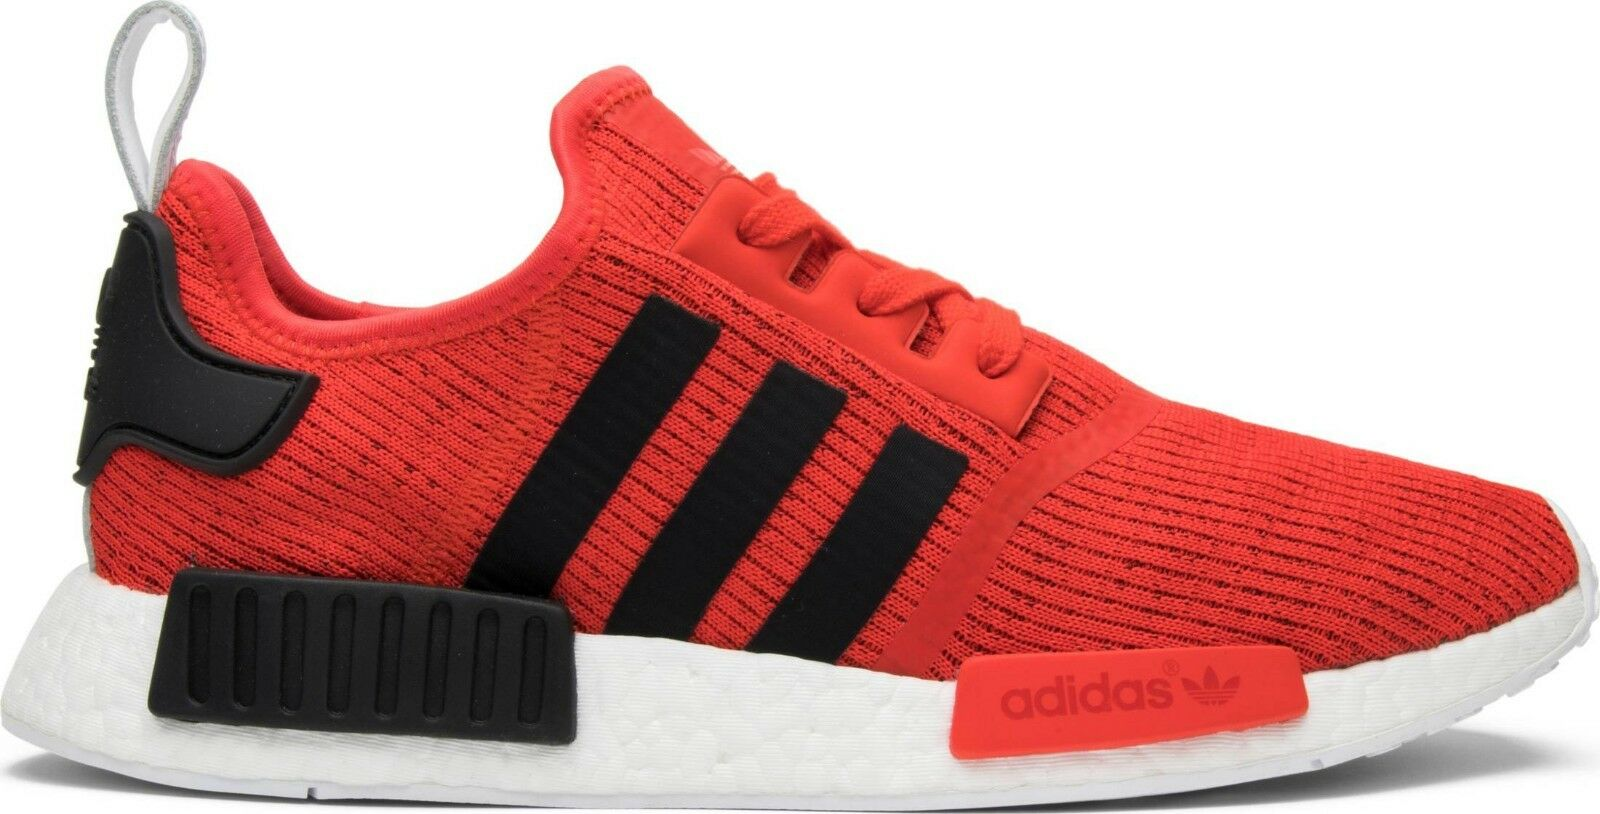 Cheap Nice NMD R1 'Core Red' on the sale